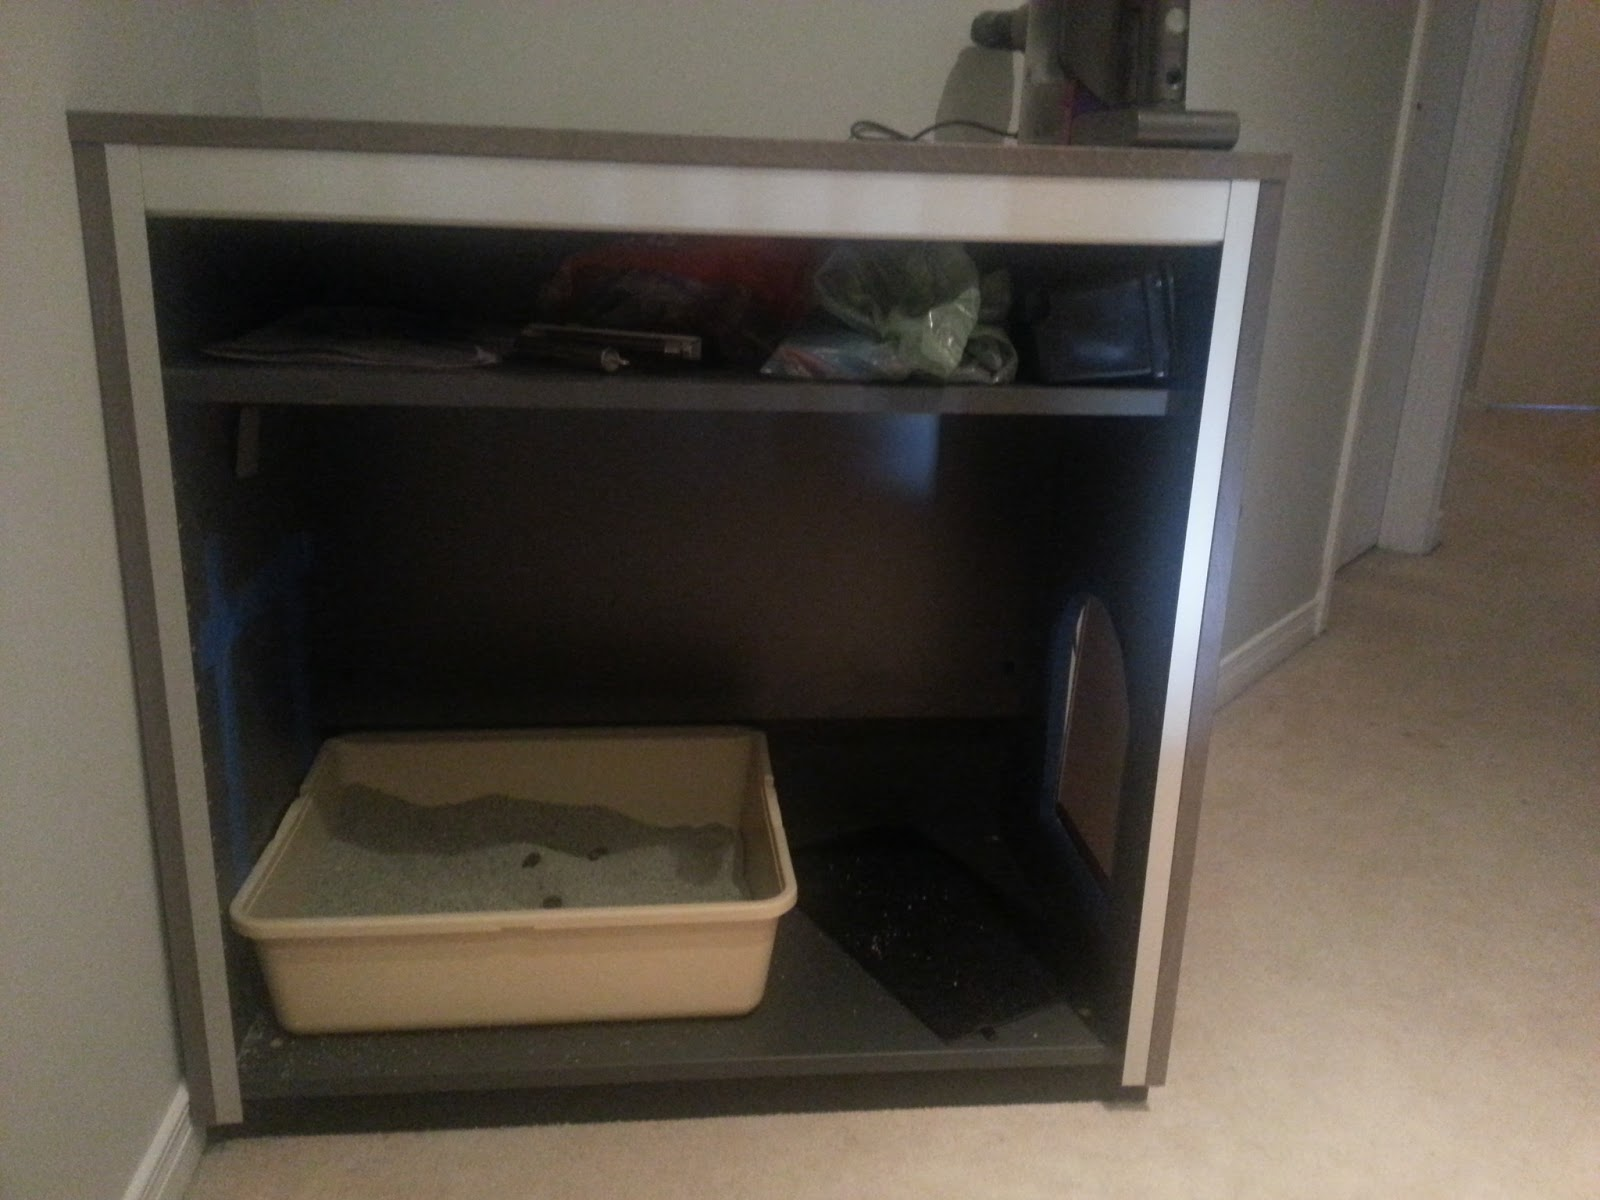 Faktum Ikea Schublade Ausbauen ~   simple Ikea hack of a Galant Roll Front Cabinet as a kitty litter box